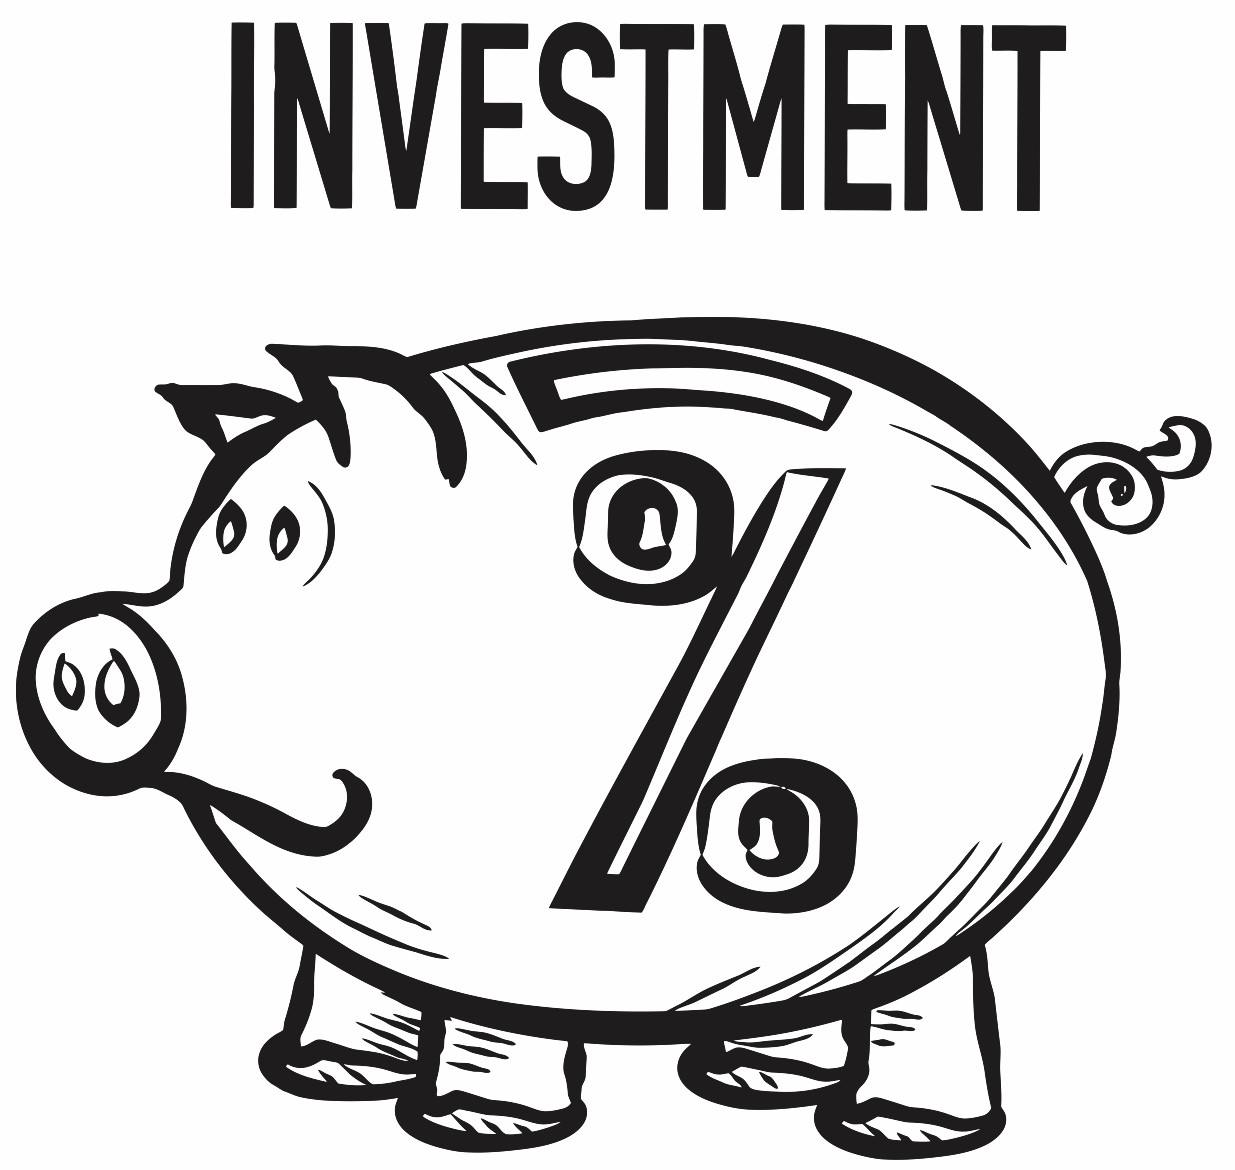 1235x1170 Cute Piggy Bank Investment Percentage Concept Printable Image